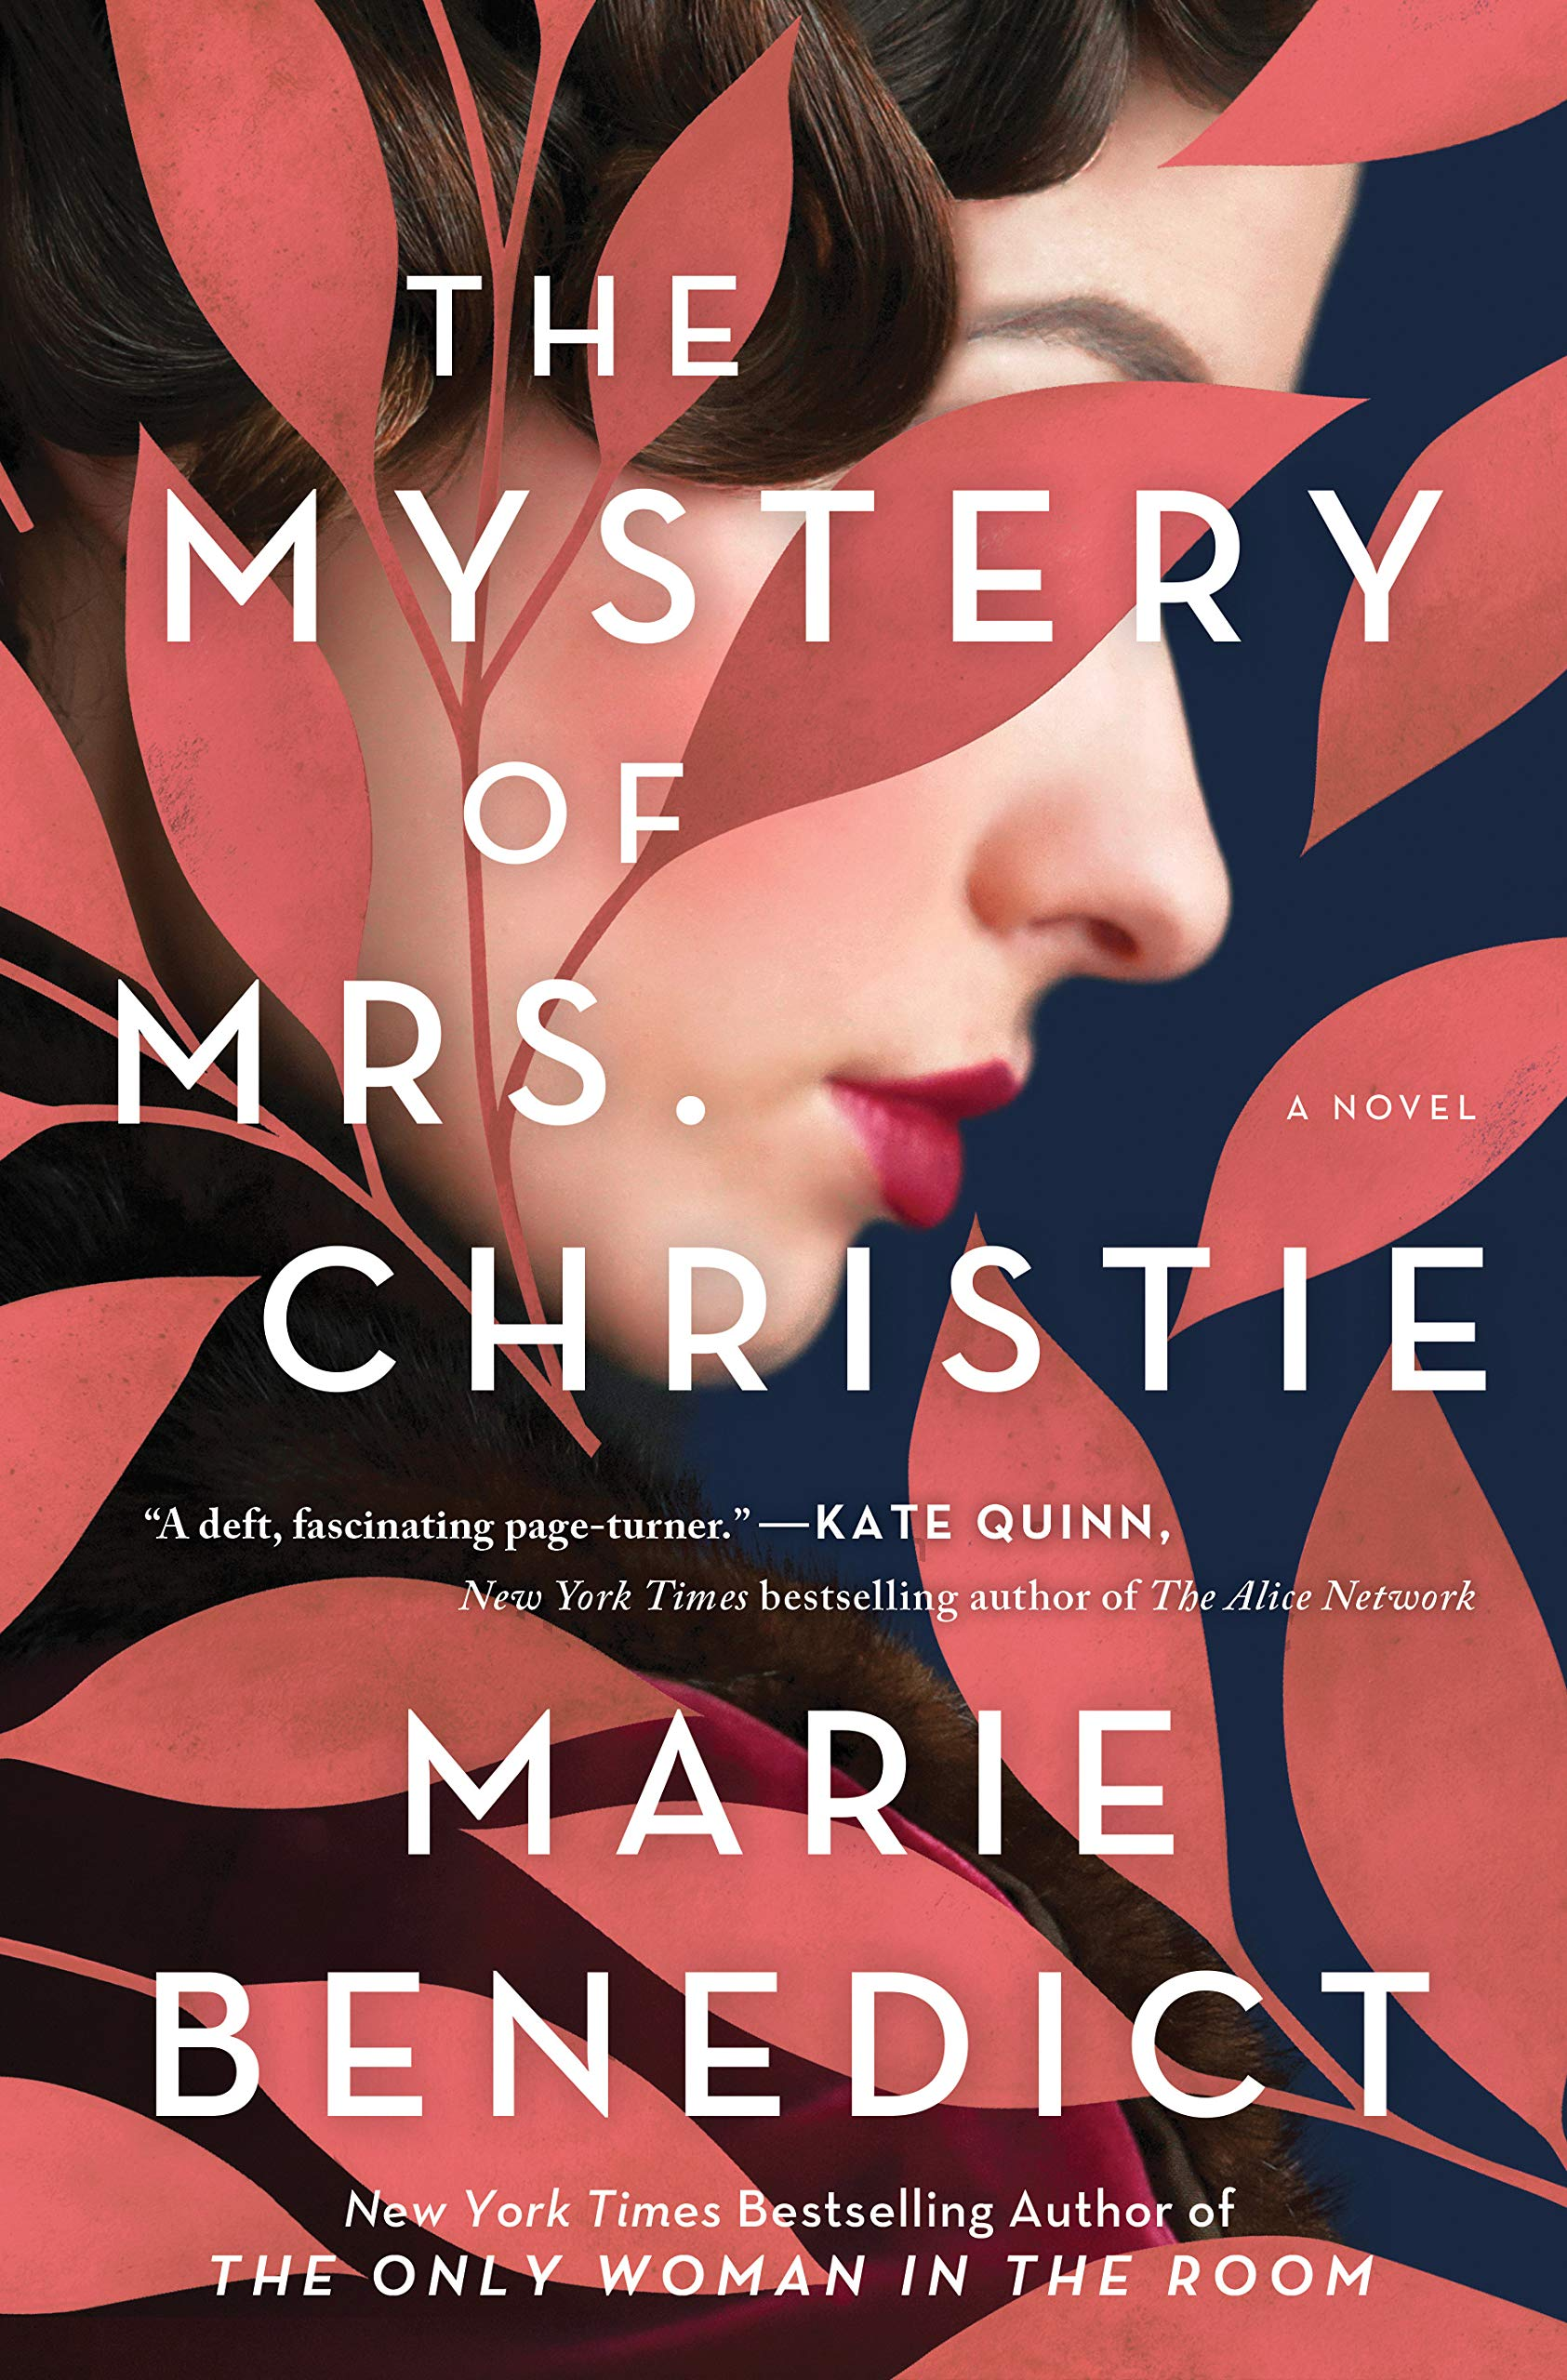 Book Cover of The Mystery of Mrs. Christie by Marie Benedict